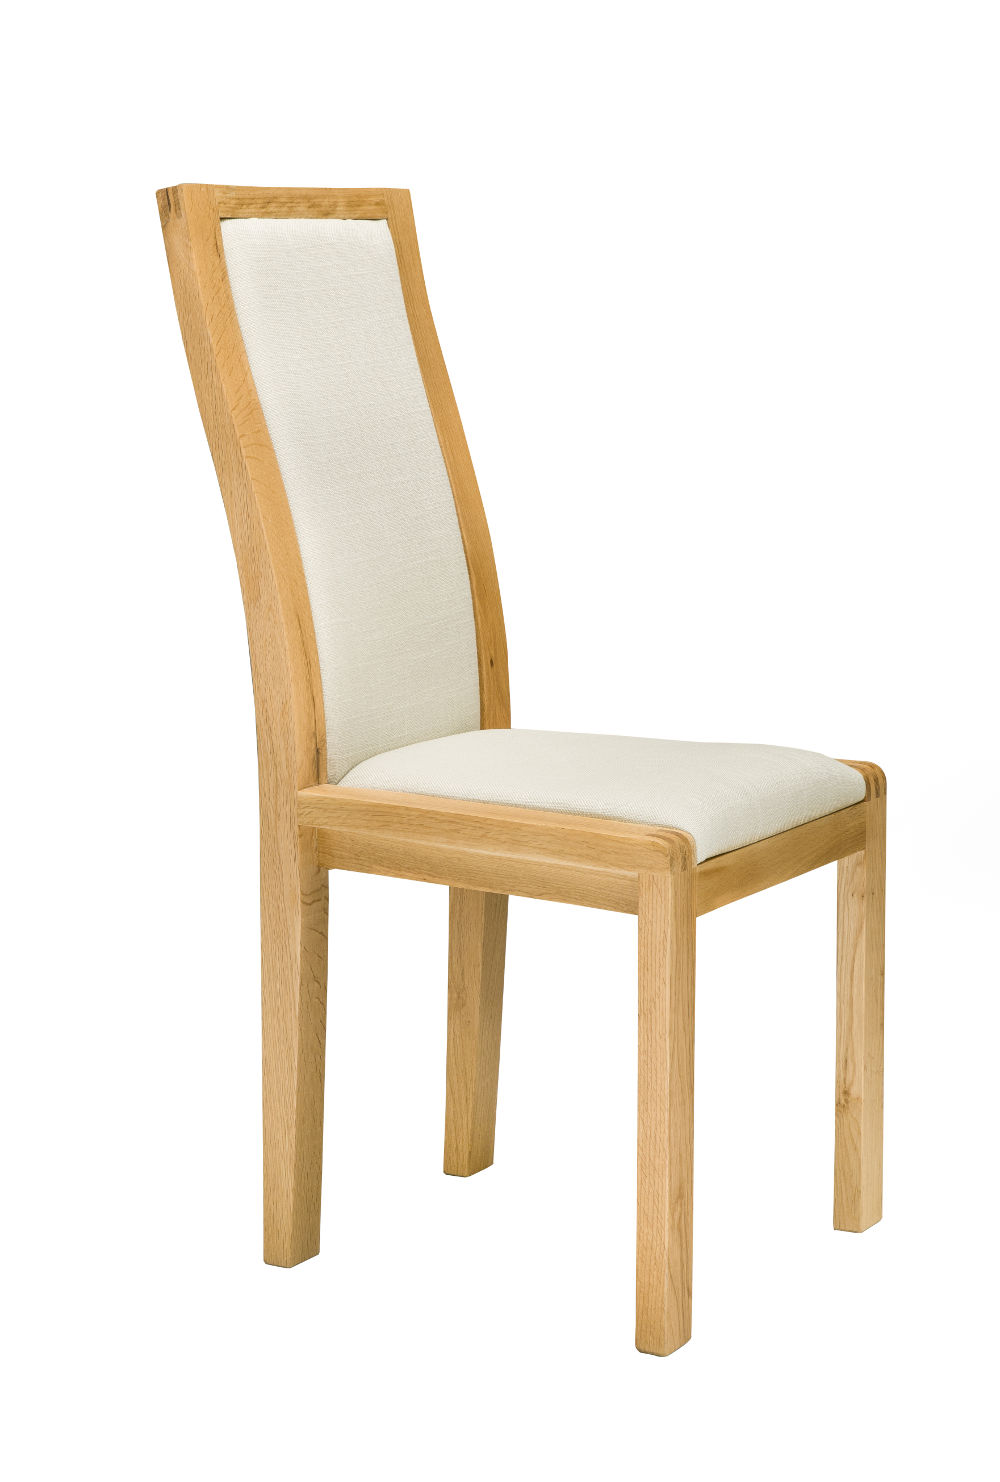 Ercol Bosco Upholstered Dining Chair - 1392C